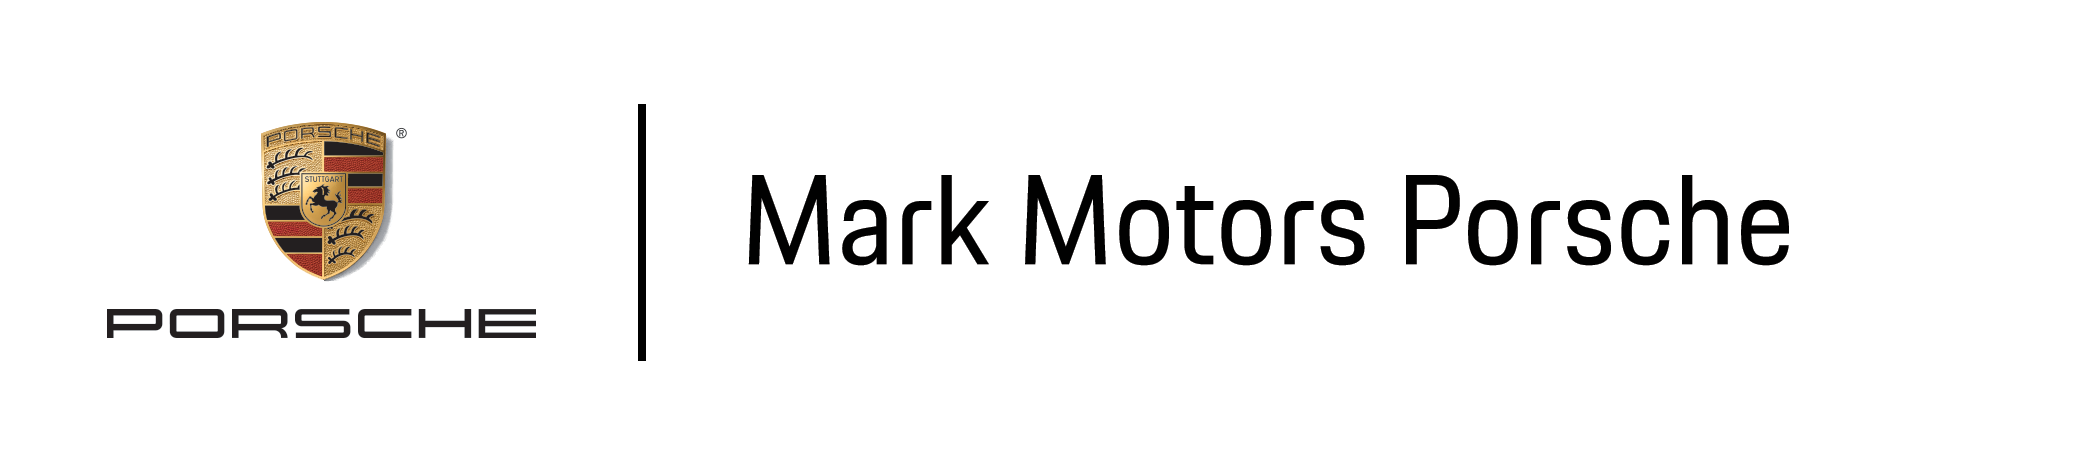 Mark Motors Porsche New 2020